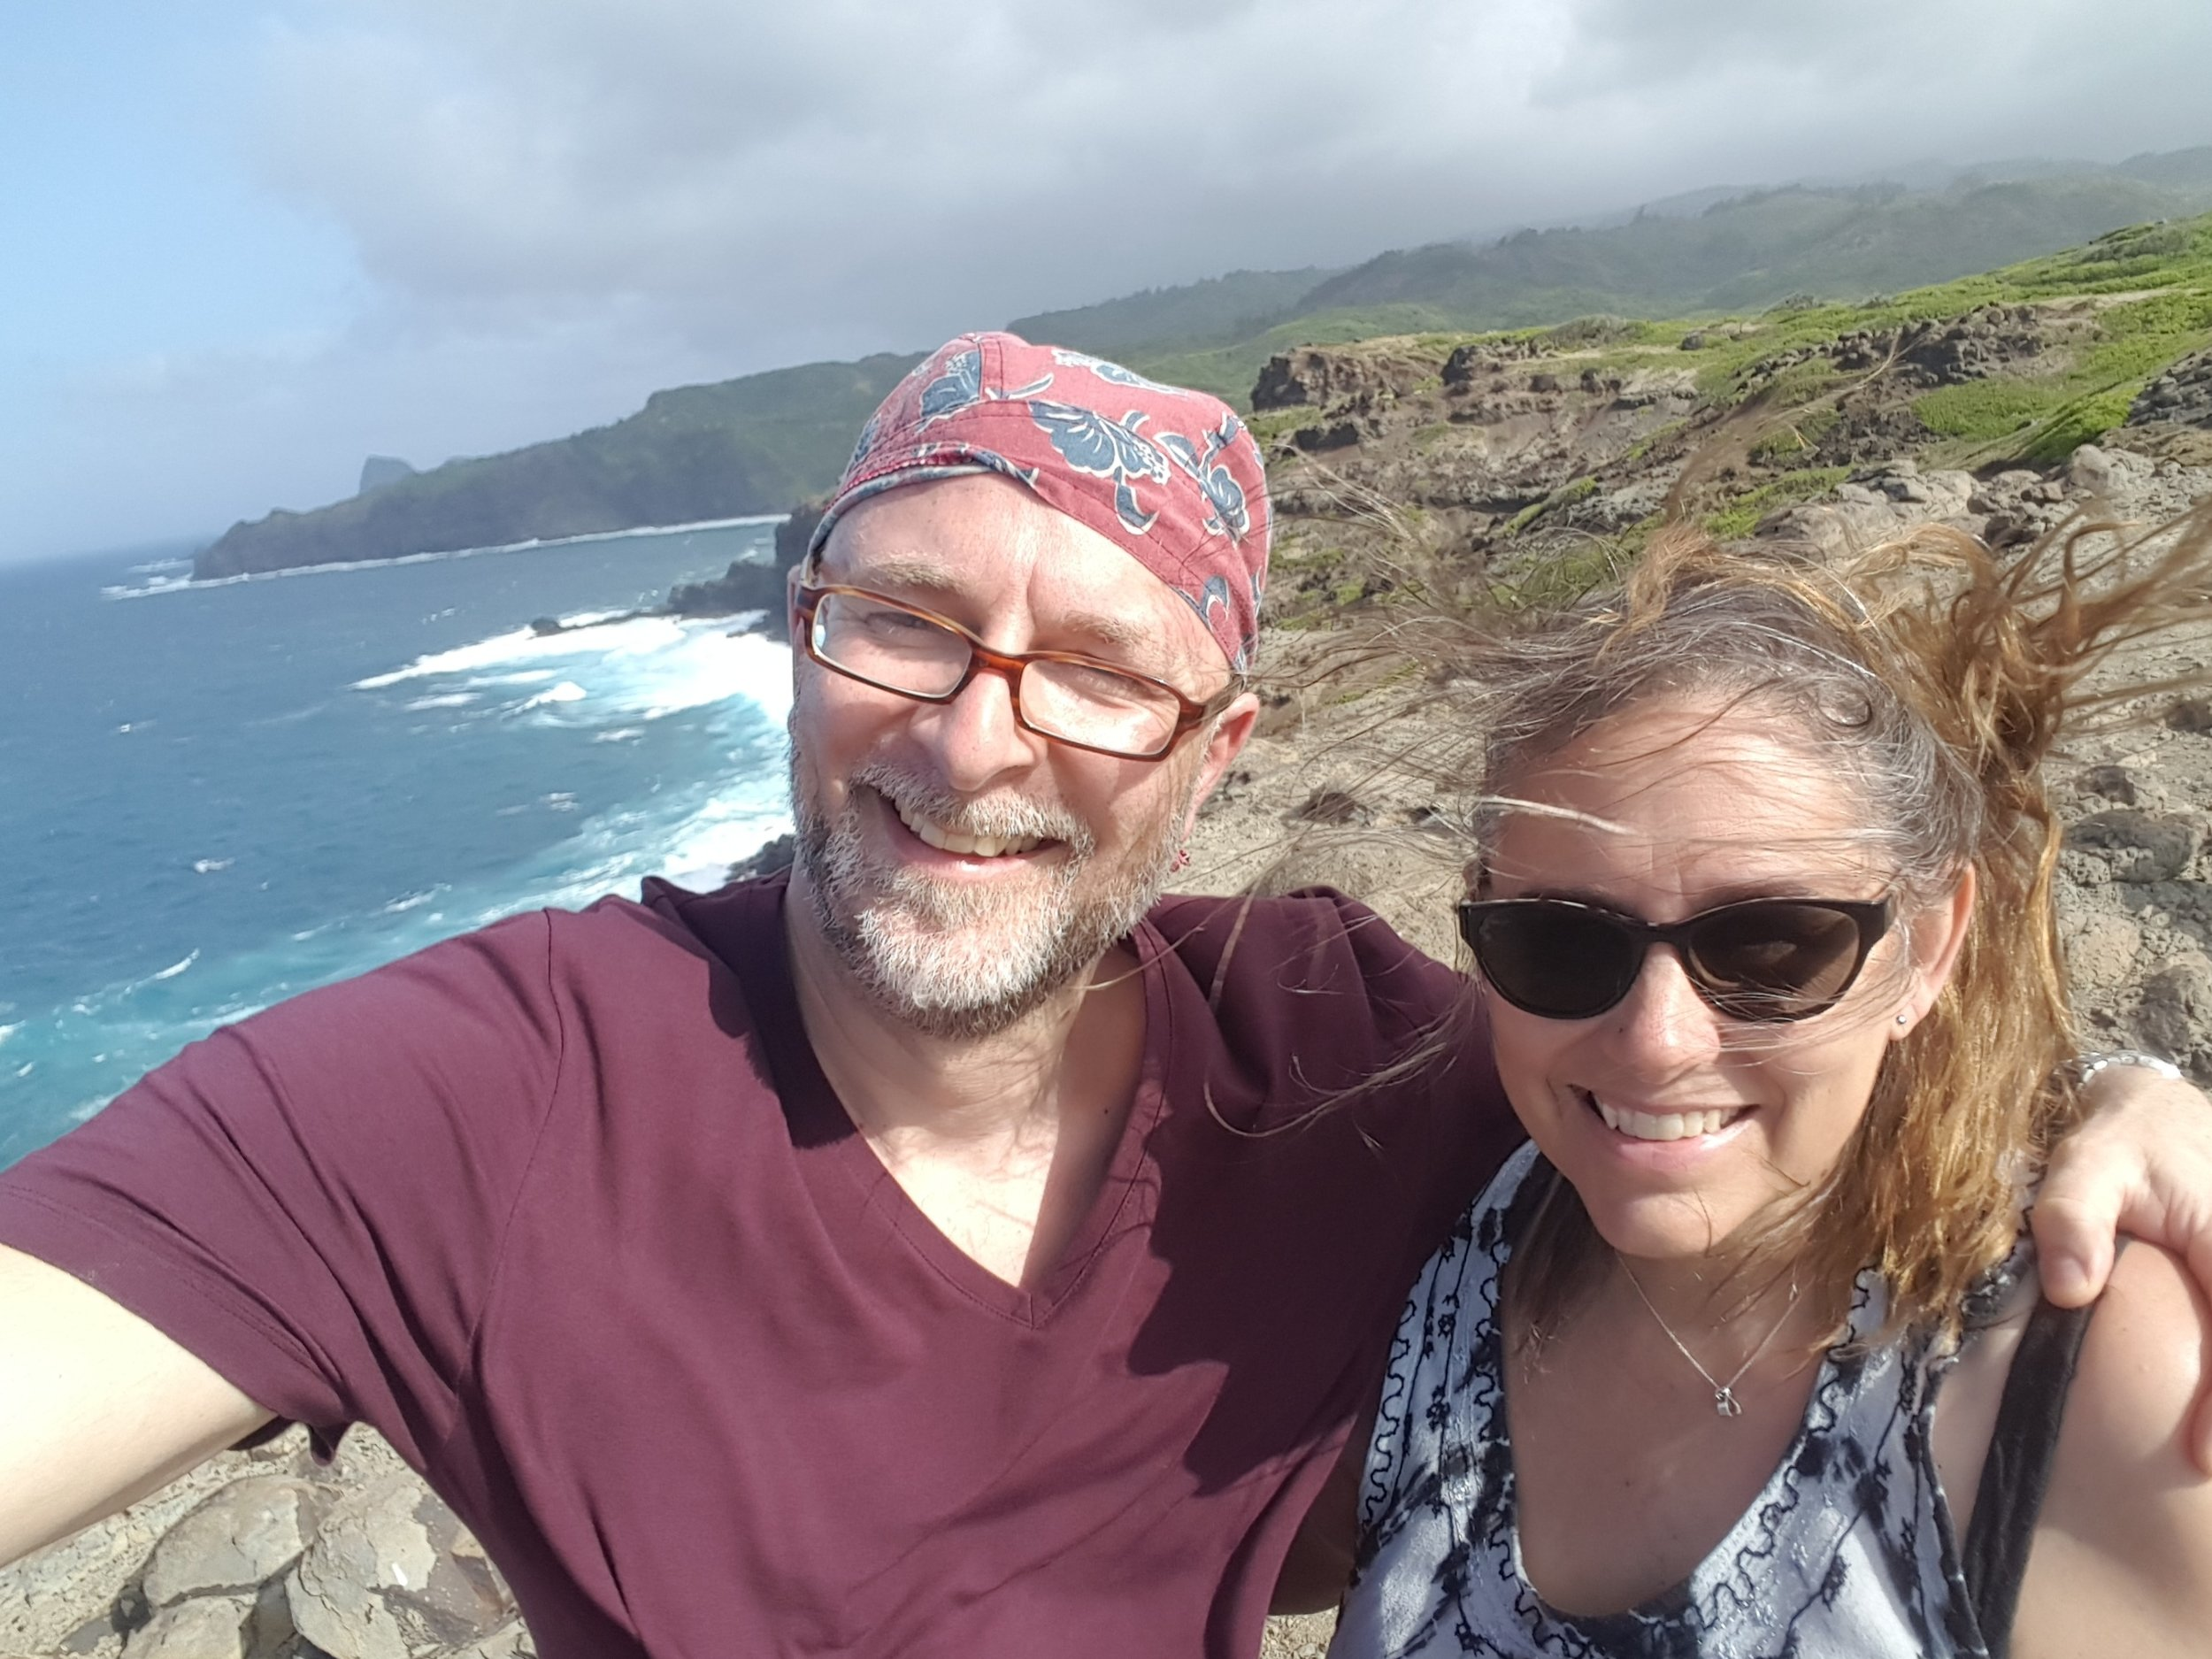 My guy, Chris, and yours truly, finding amazing new vistas in West Maui.